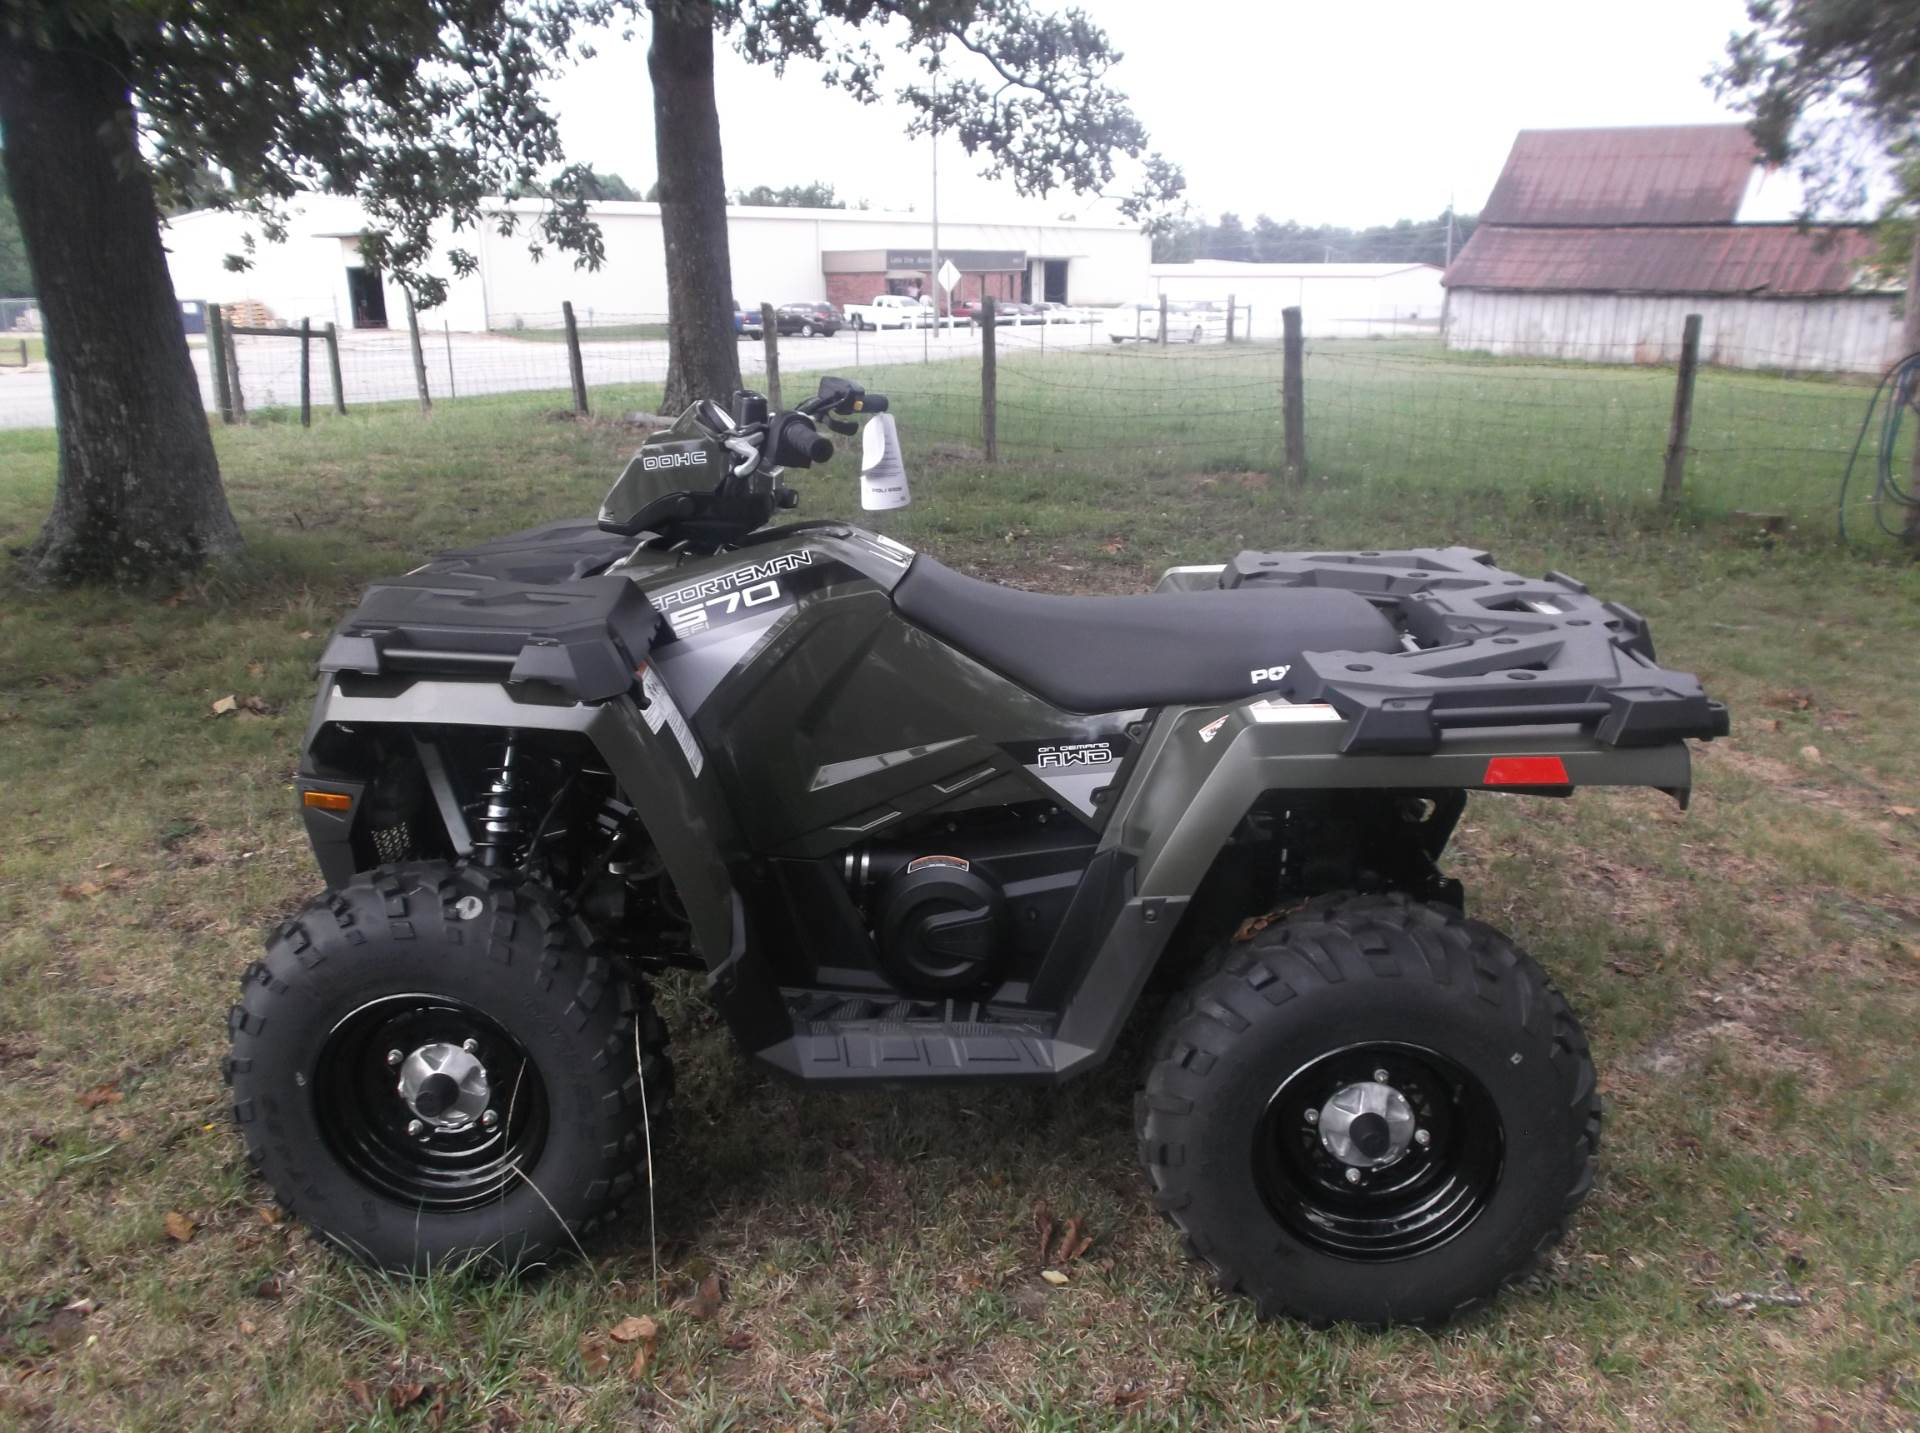 2019 Polaris Sportsman 570 in Greer, South Carolina - Photo 11